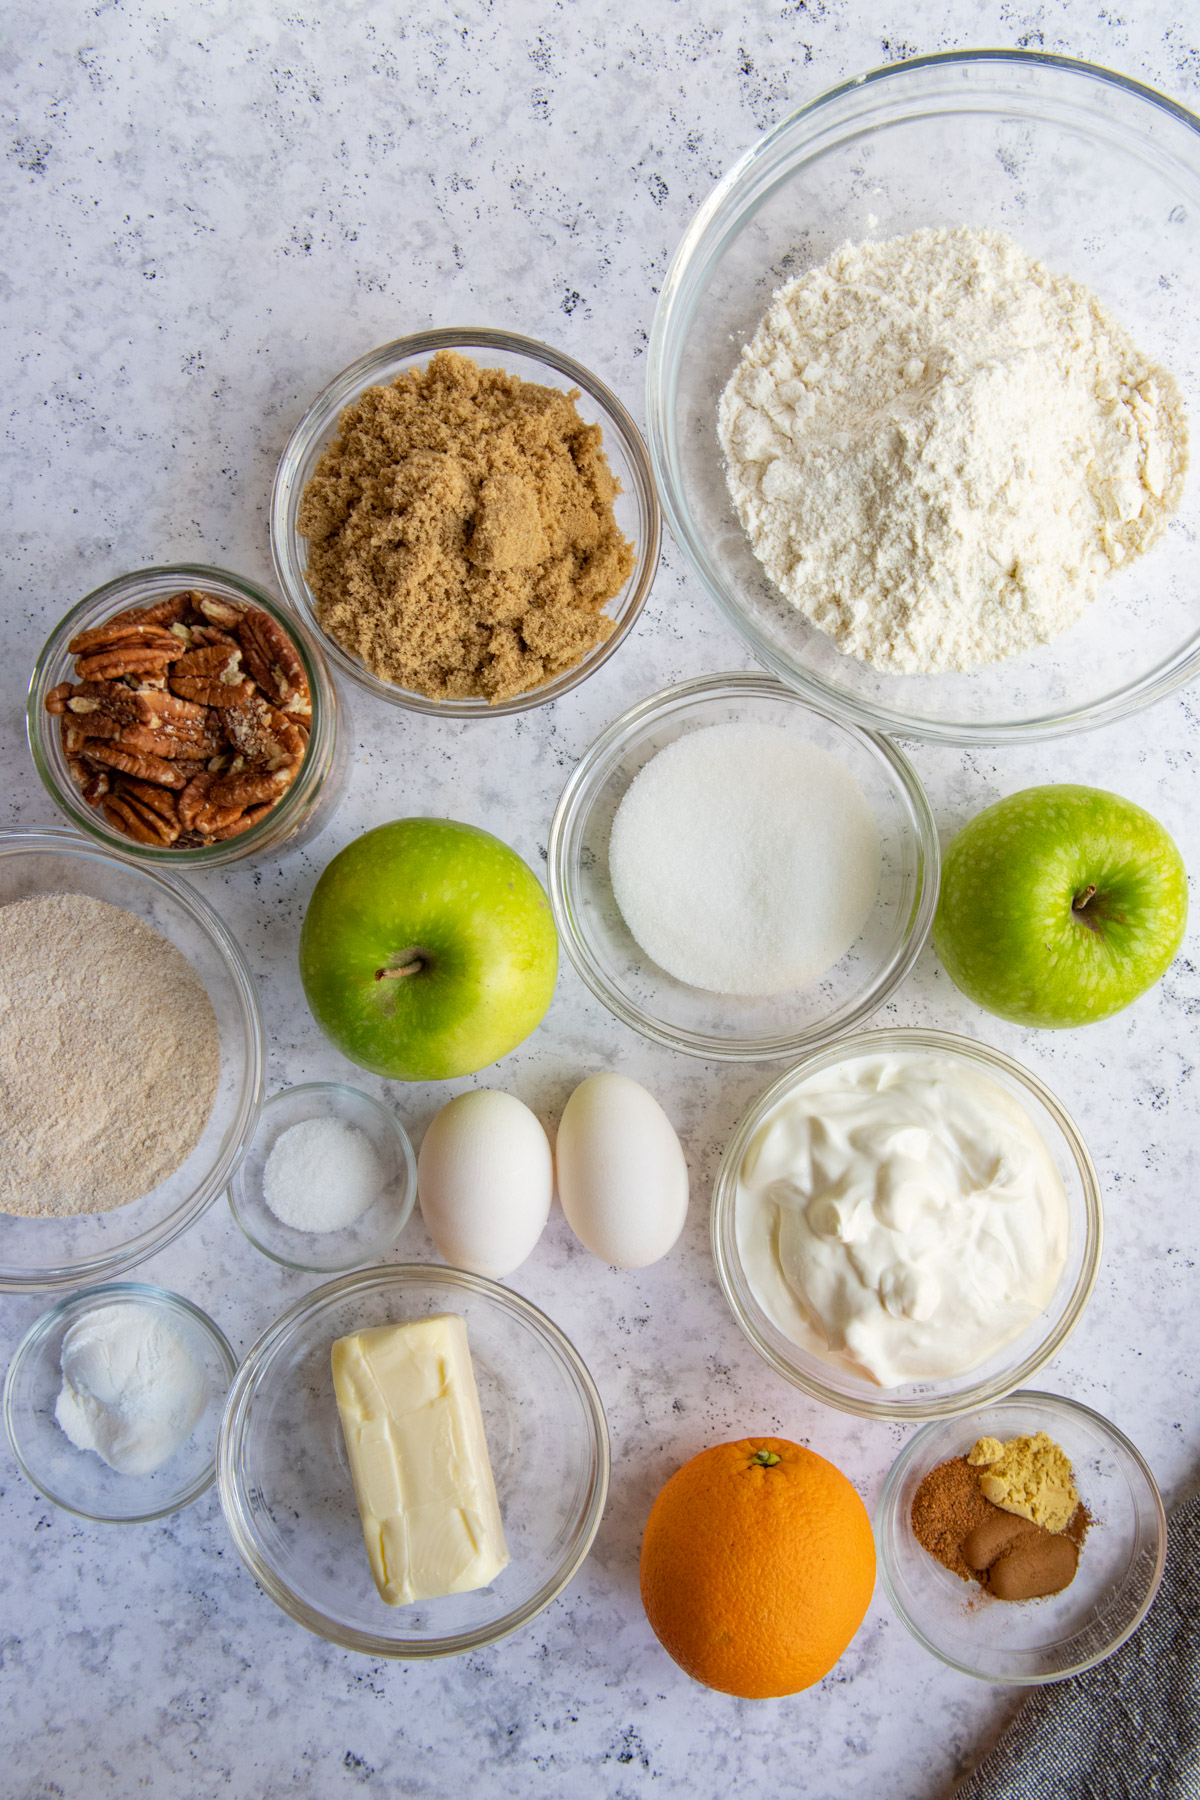 Apple Spice Streusel Muffin Ingredients measured and in separate bowls